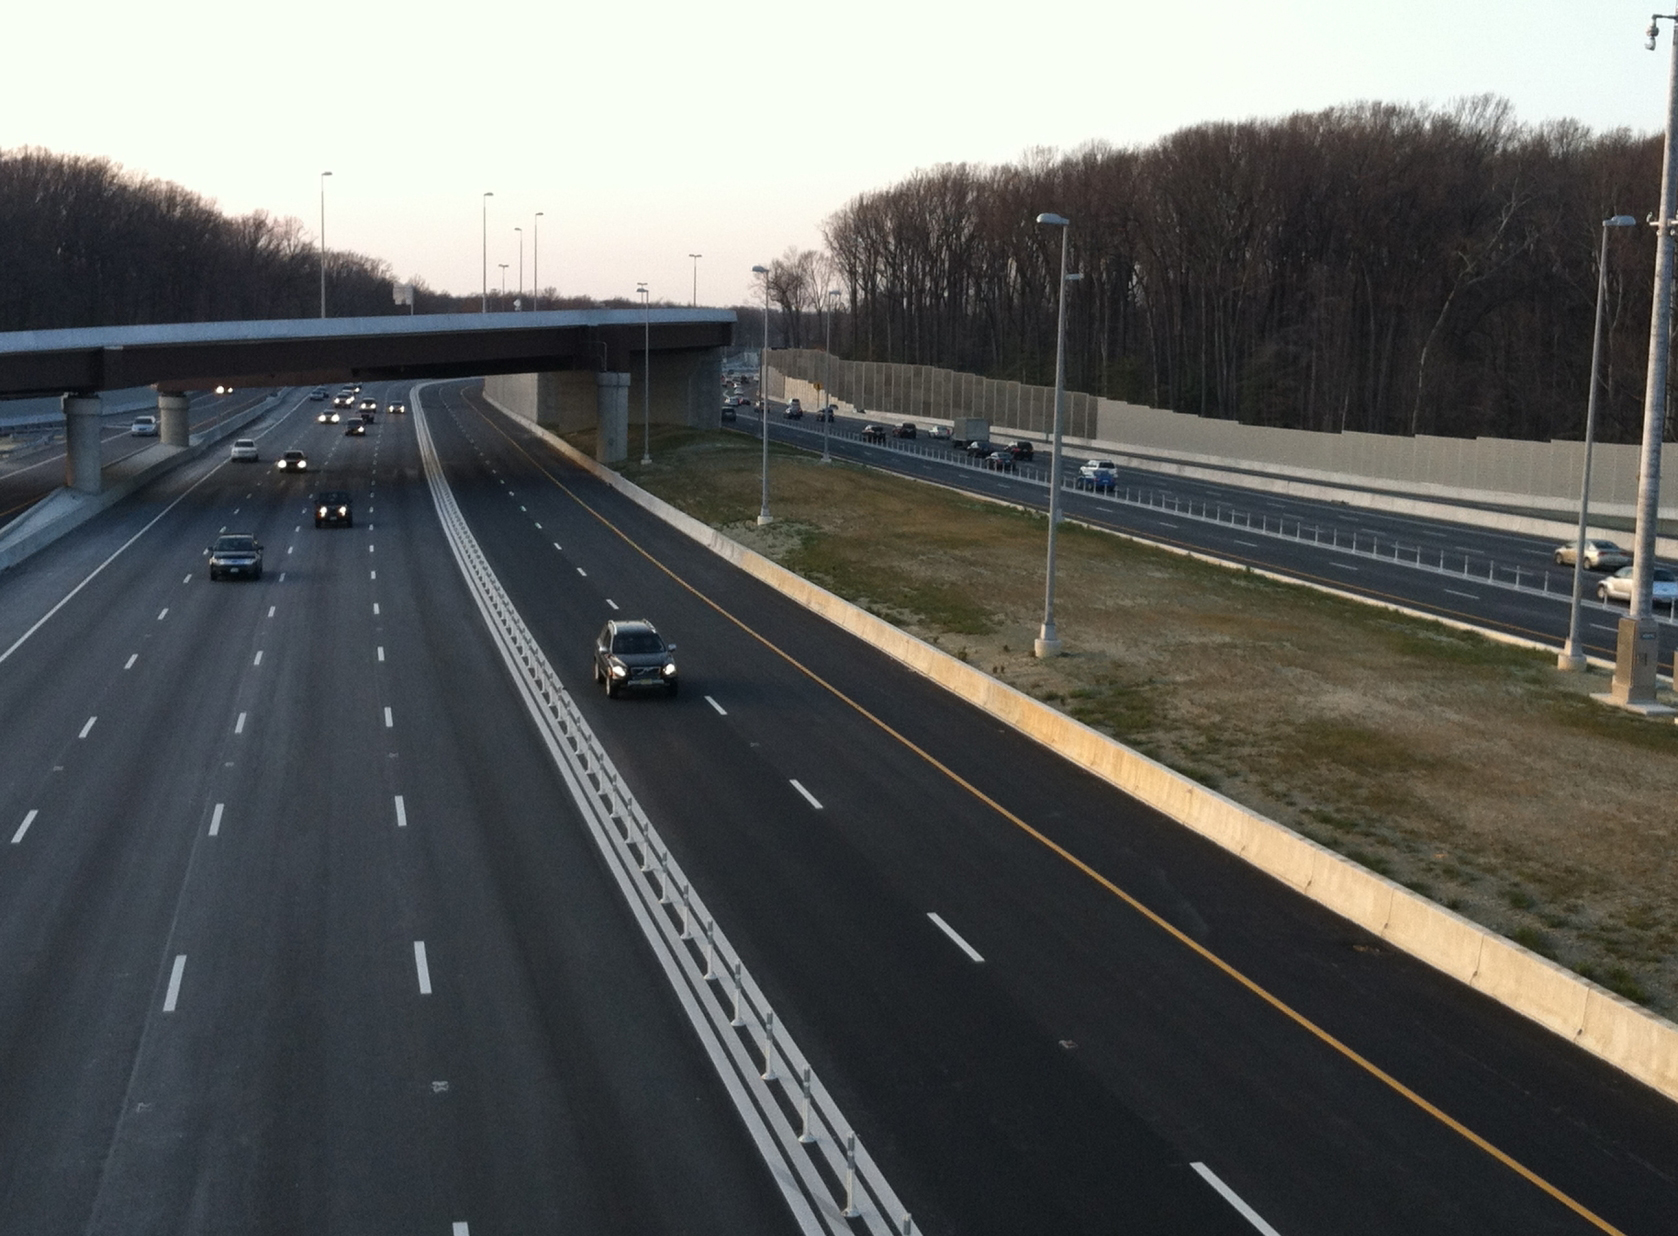 FAQs about the newly approved I-66 tolls inside the Beltway